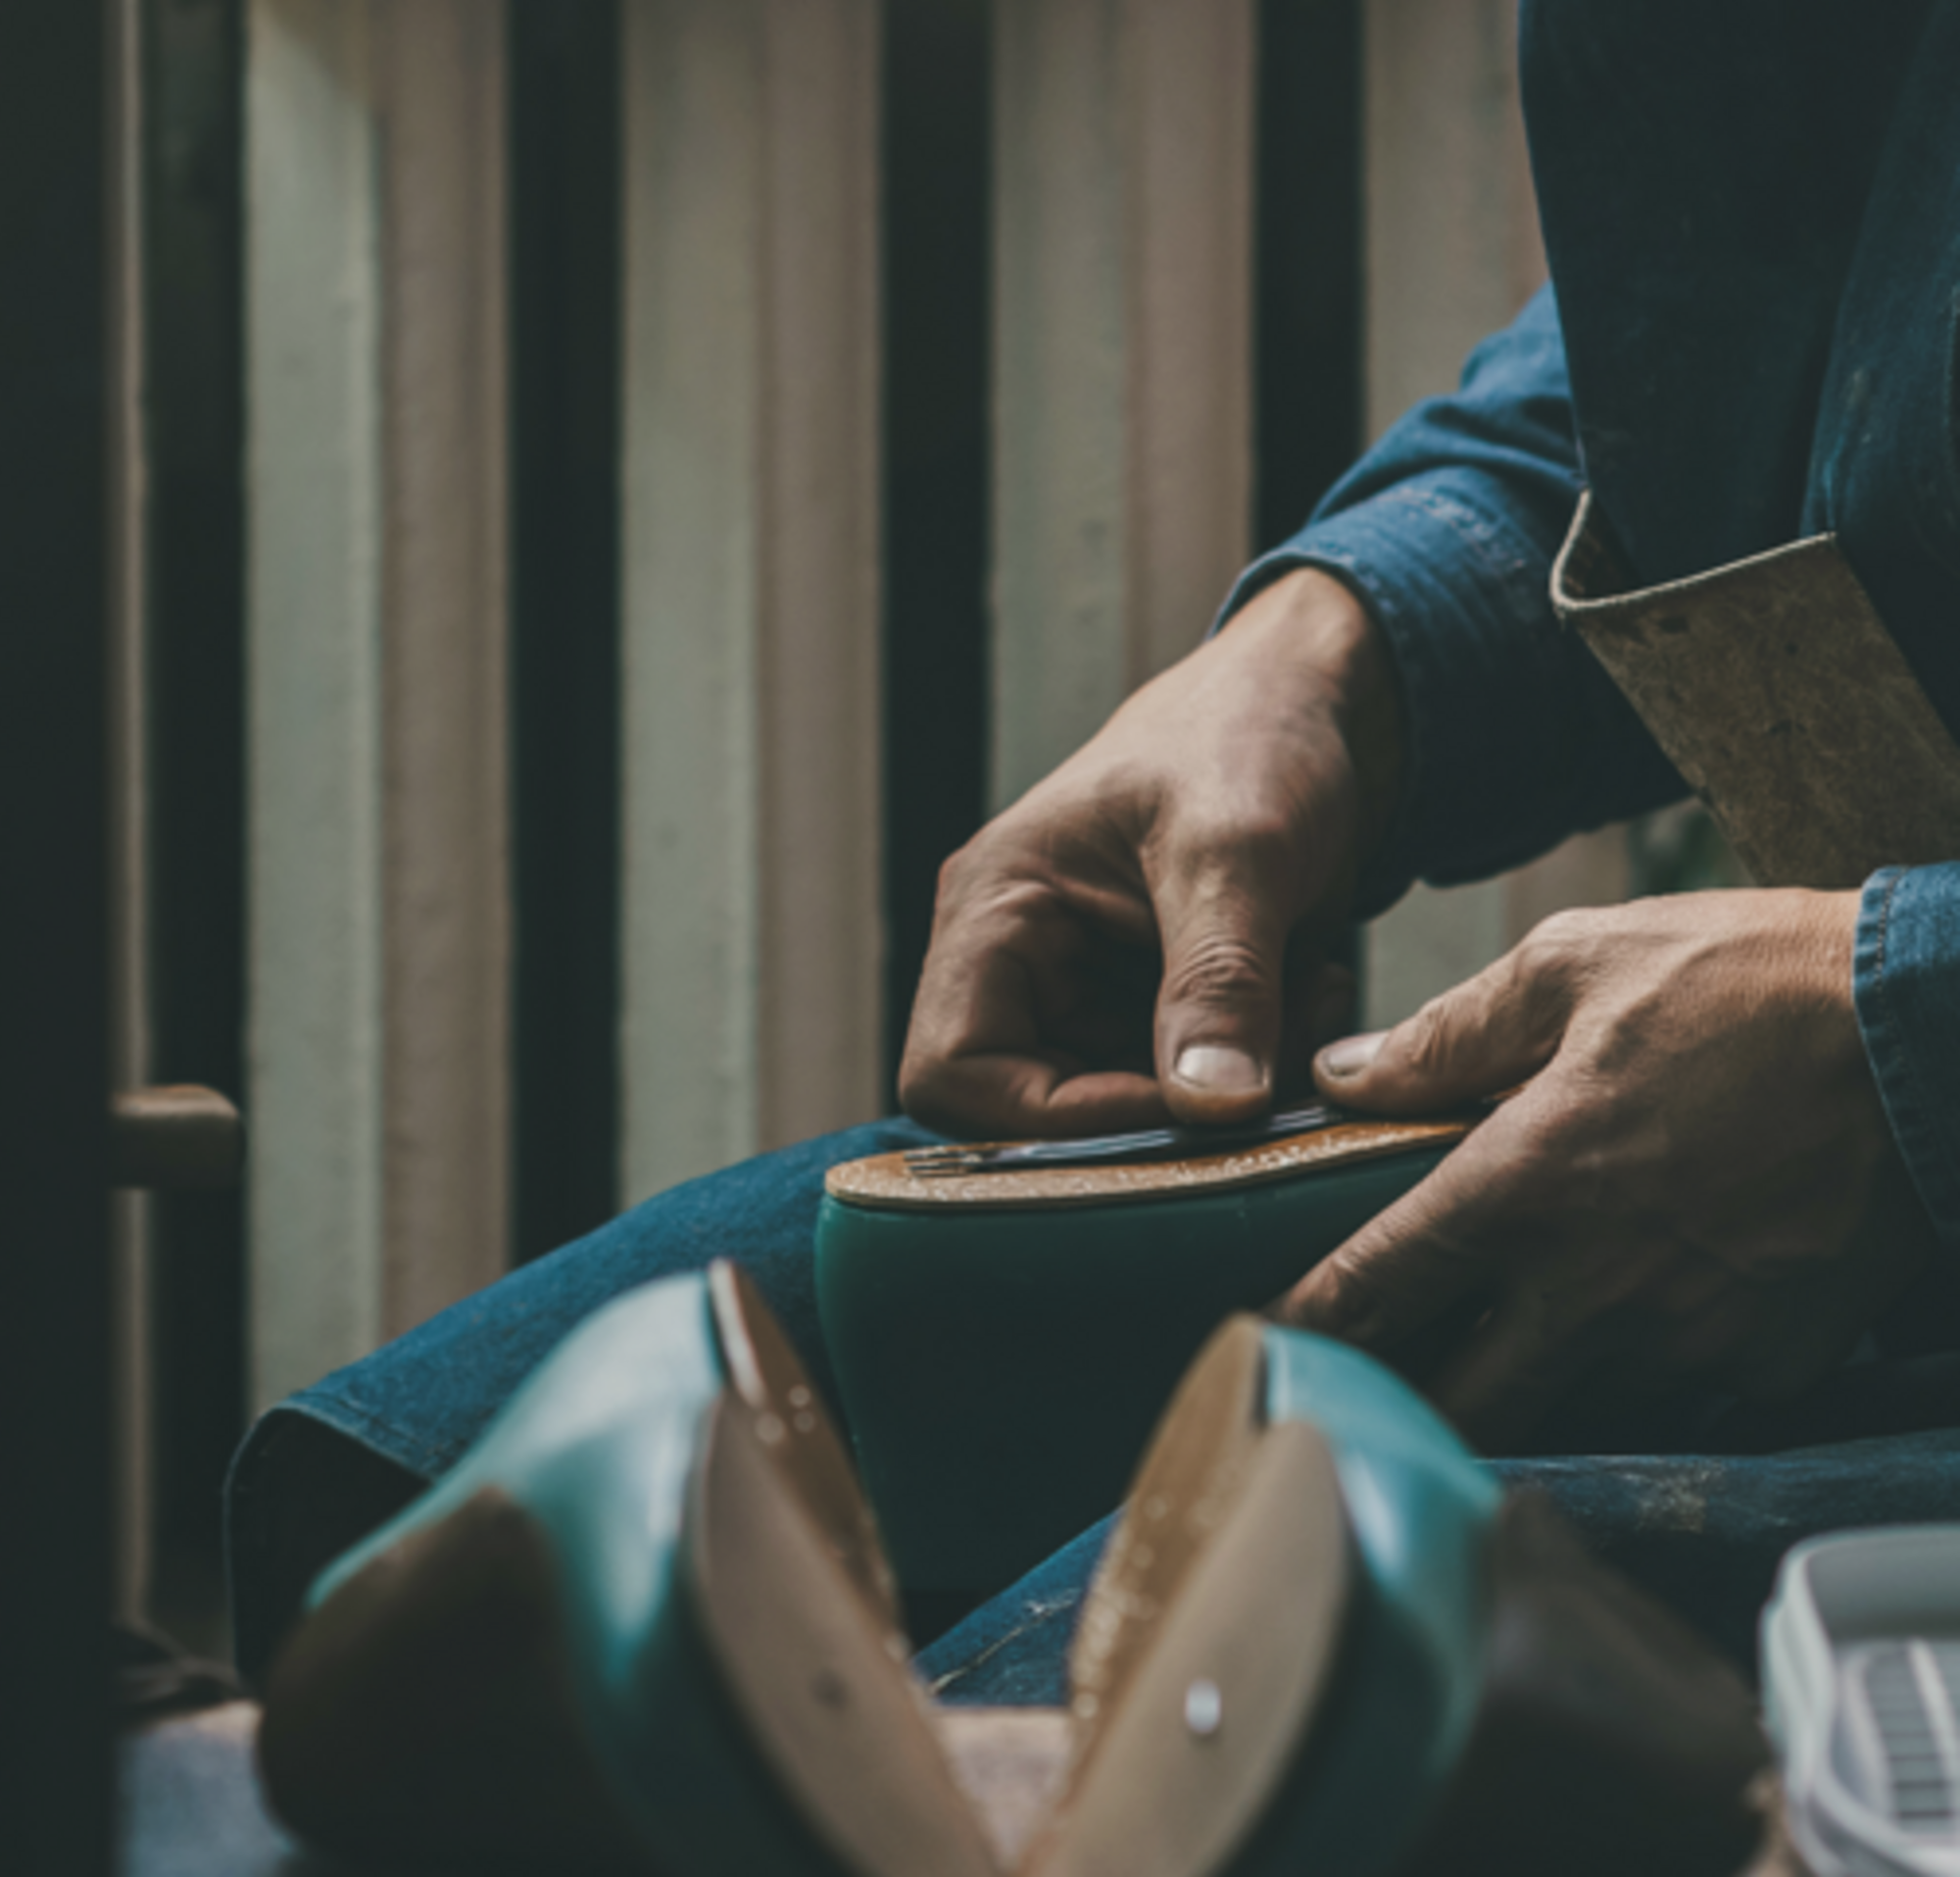 A shoemaker sitting in a workshop assembling the sole of a shoe.